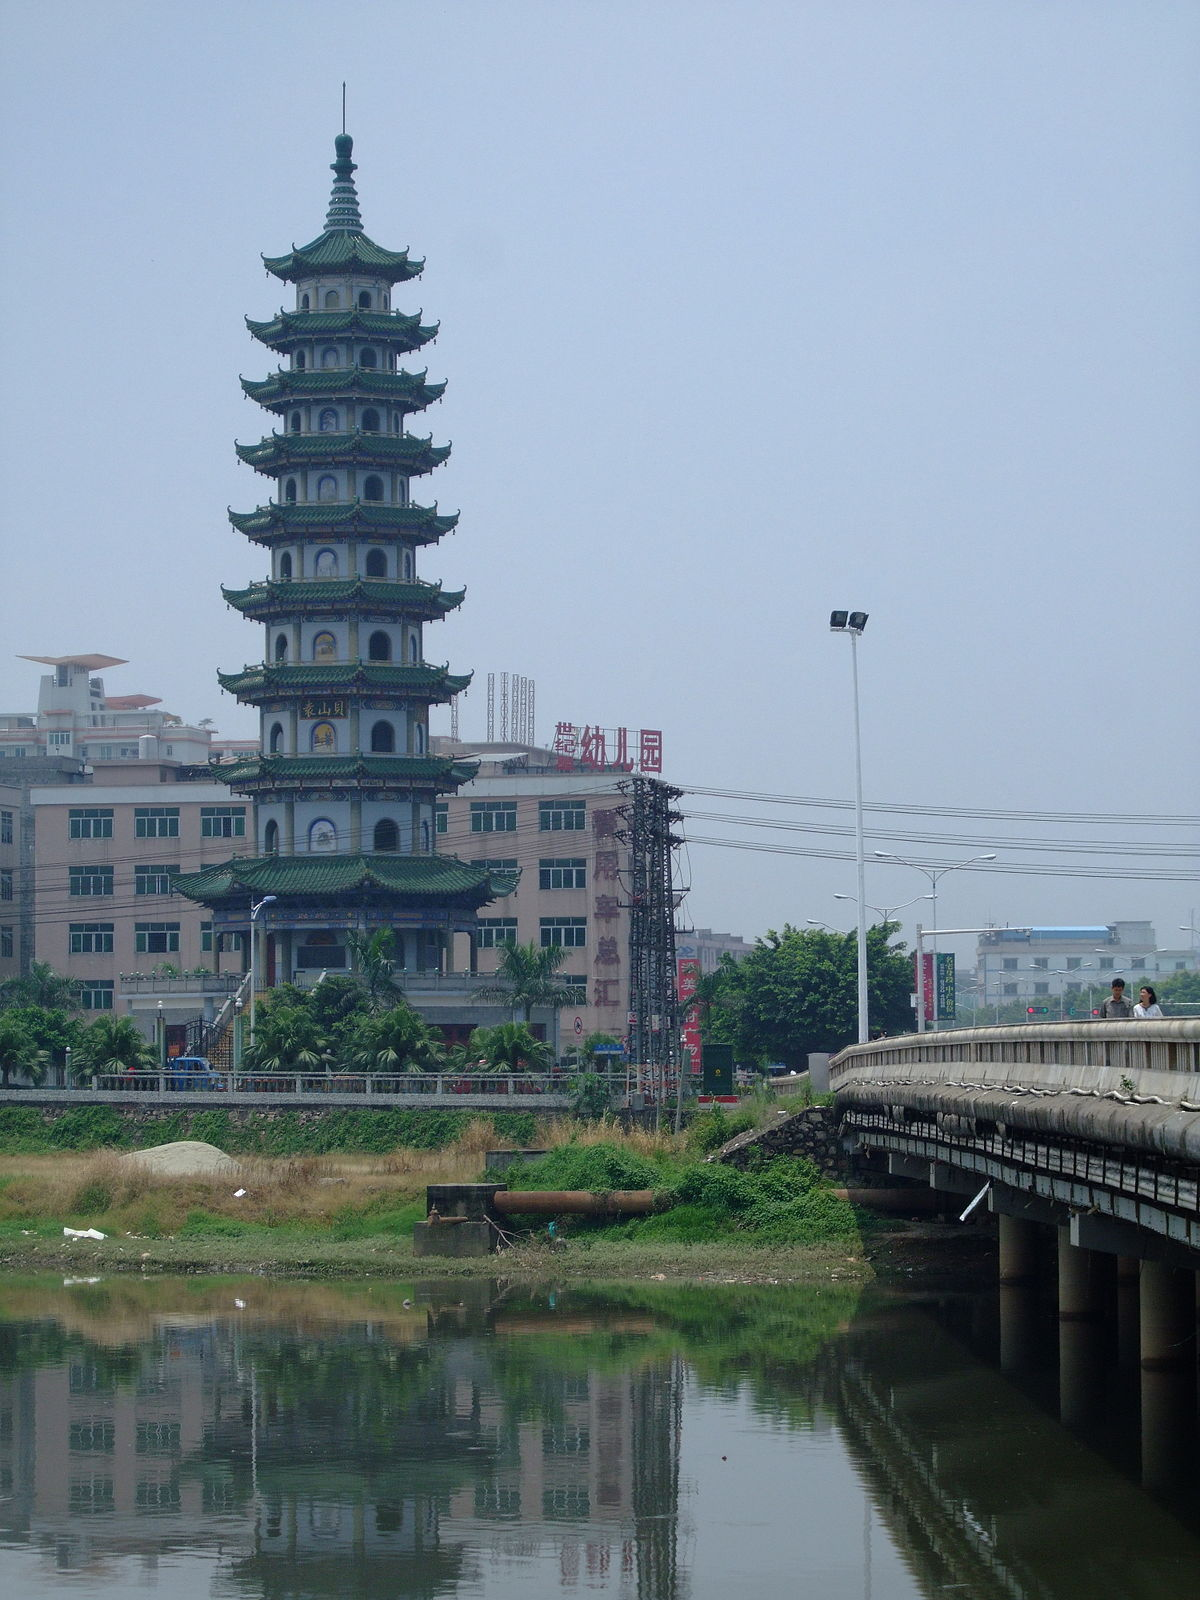 Changping guangdong wikipedia for Www homee